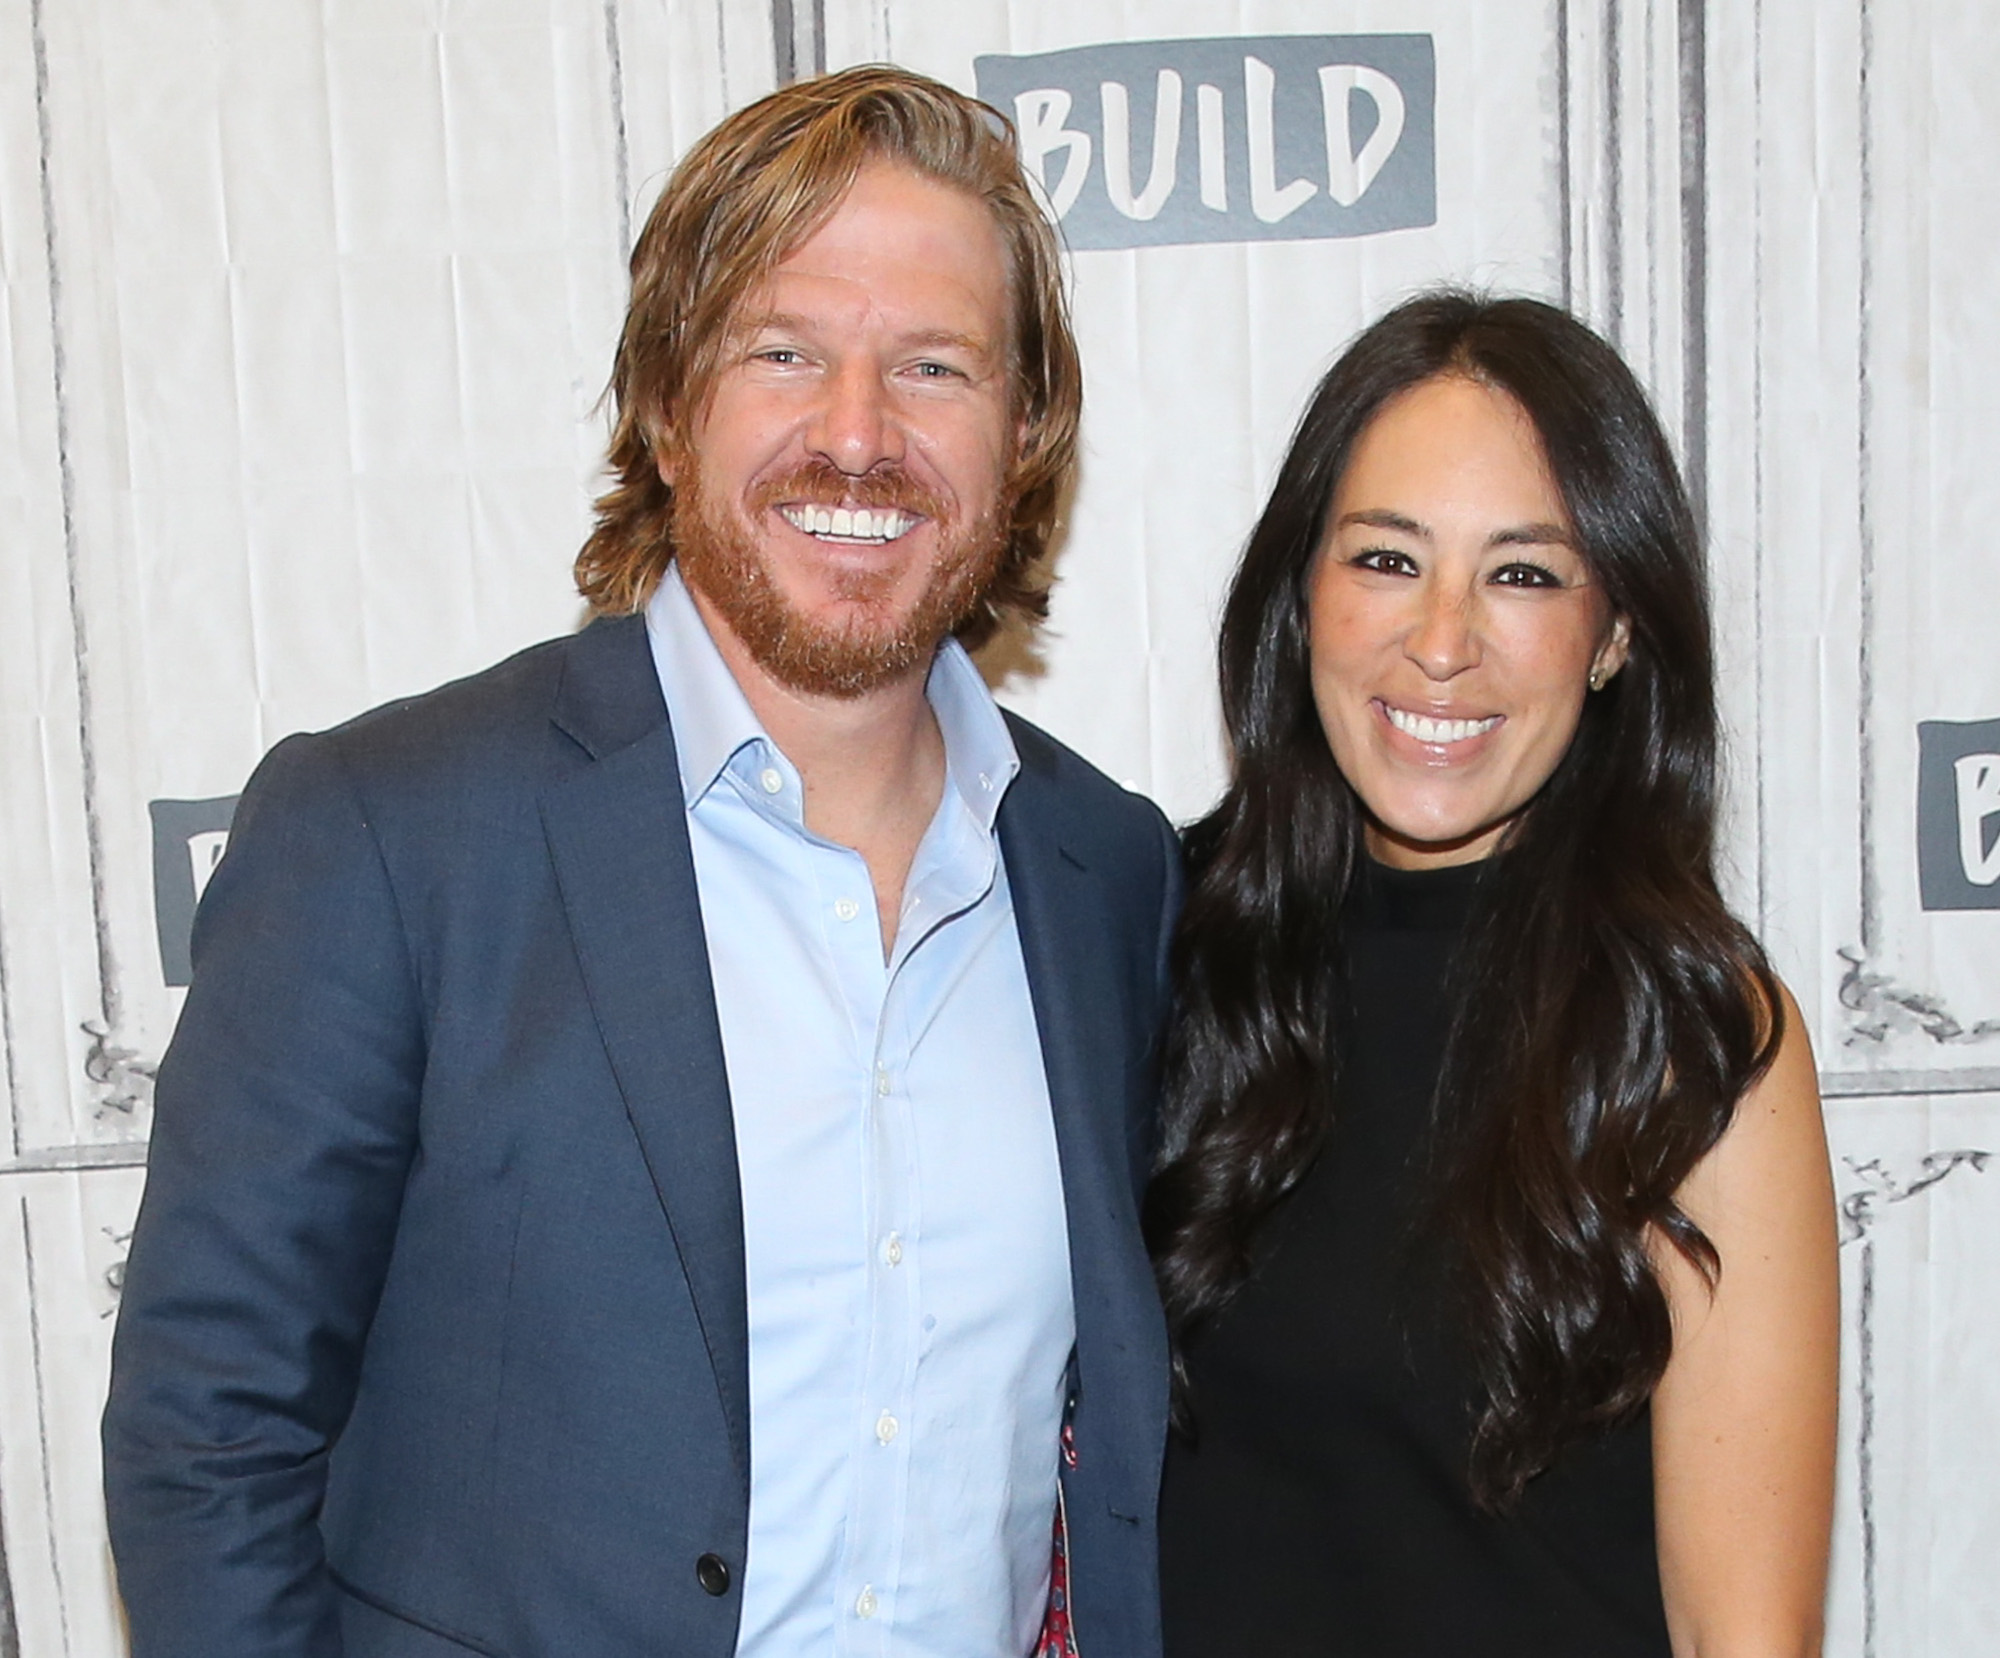 Chip and Joanna Gaines - Lead